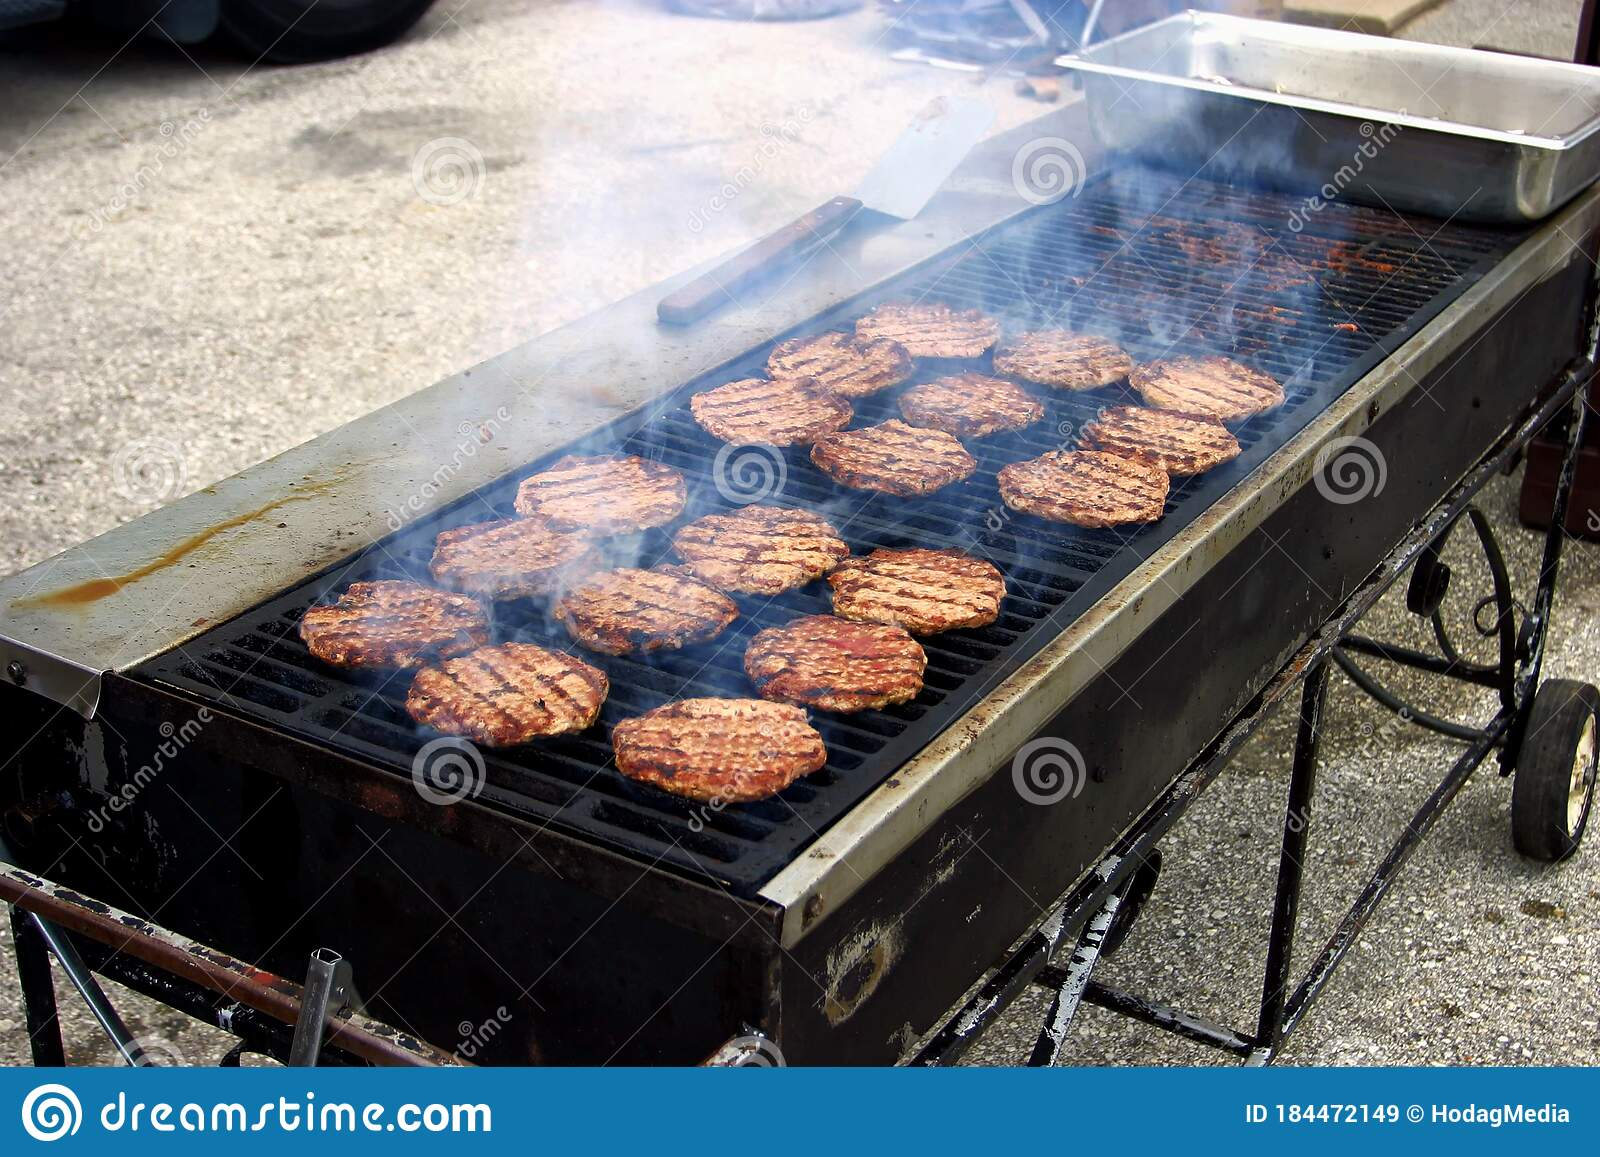 Open Charcoal Grill Cooking Burgers Stock Image Image Of Grilled Burger 184472149